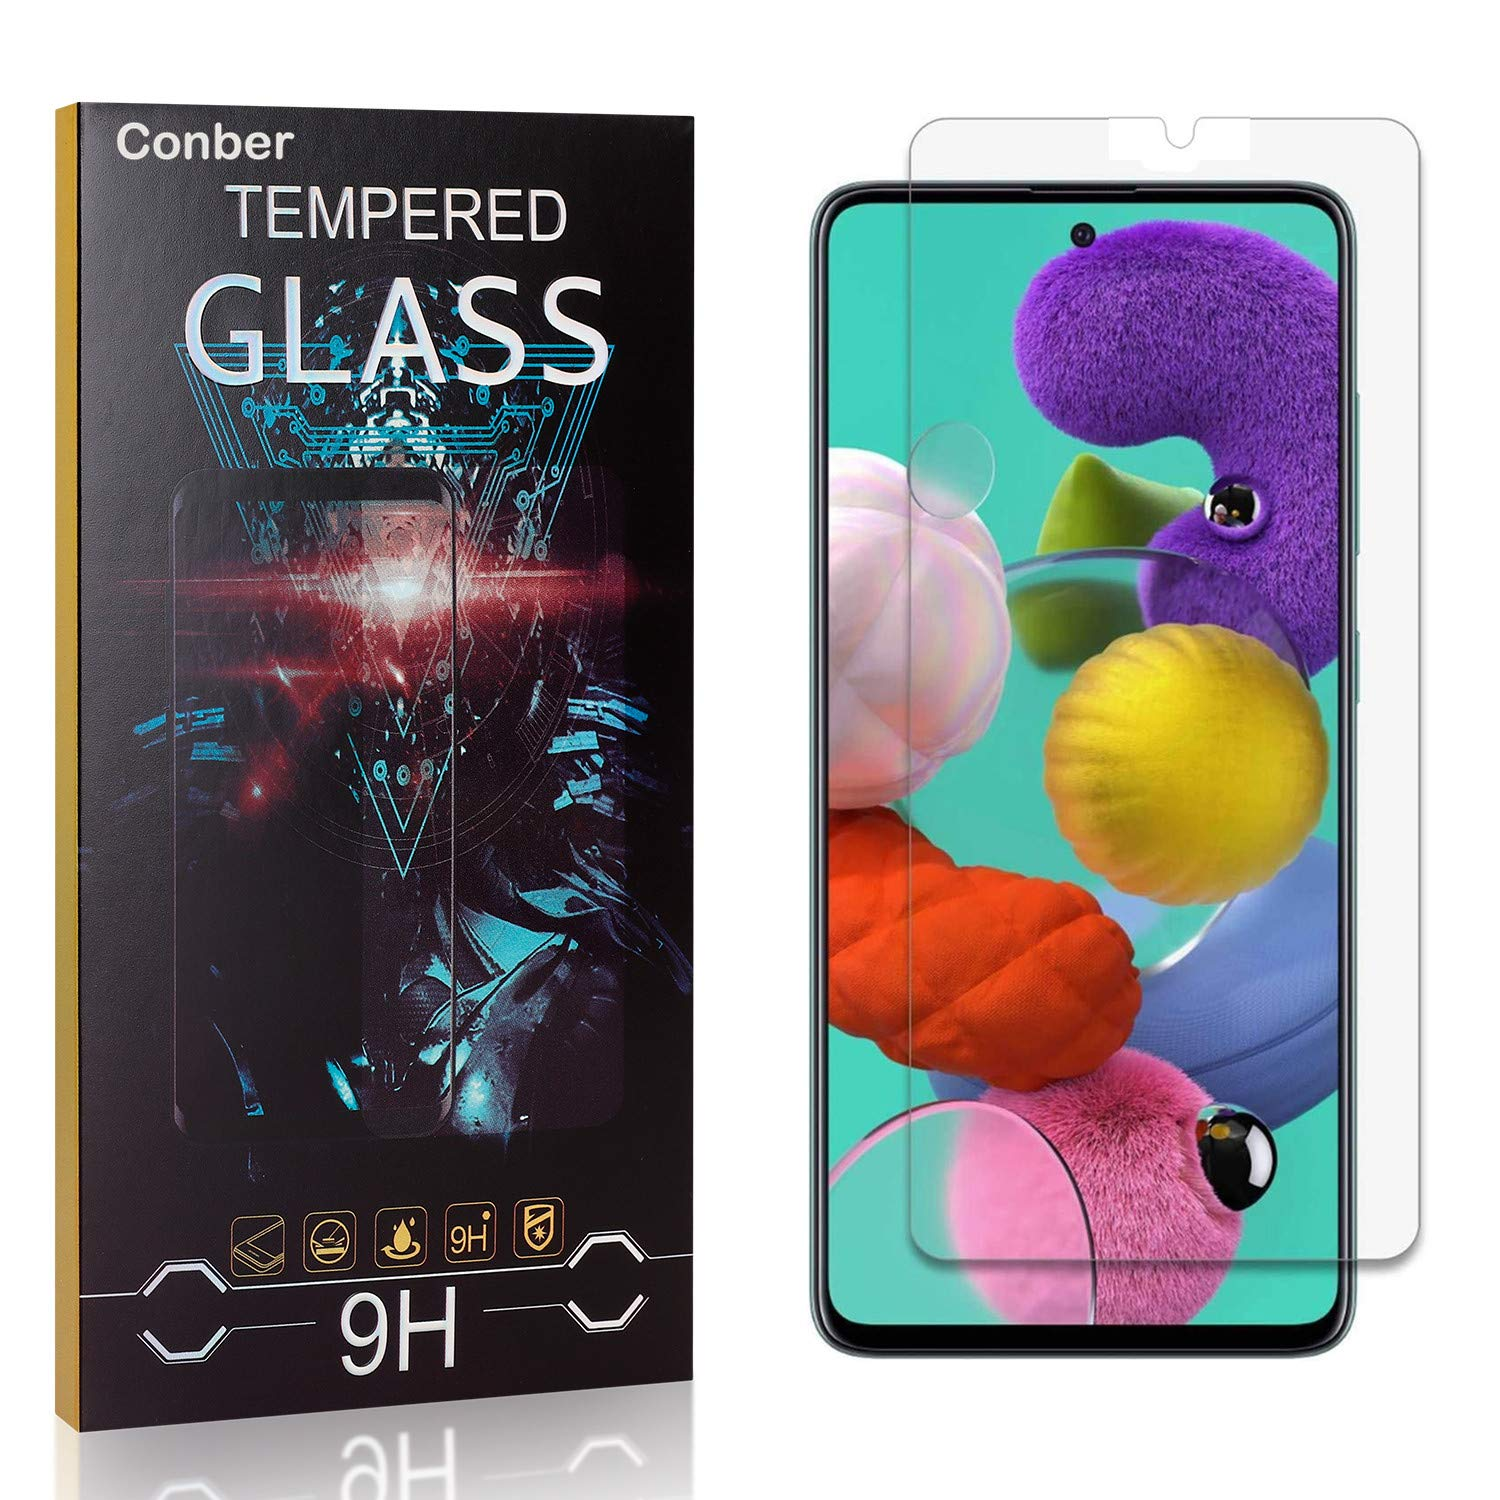 Conber Max 52% OFF Screen Protector for Samsung Galaxy 4 9H Jacksonville Mall Pack Temp A71